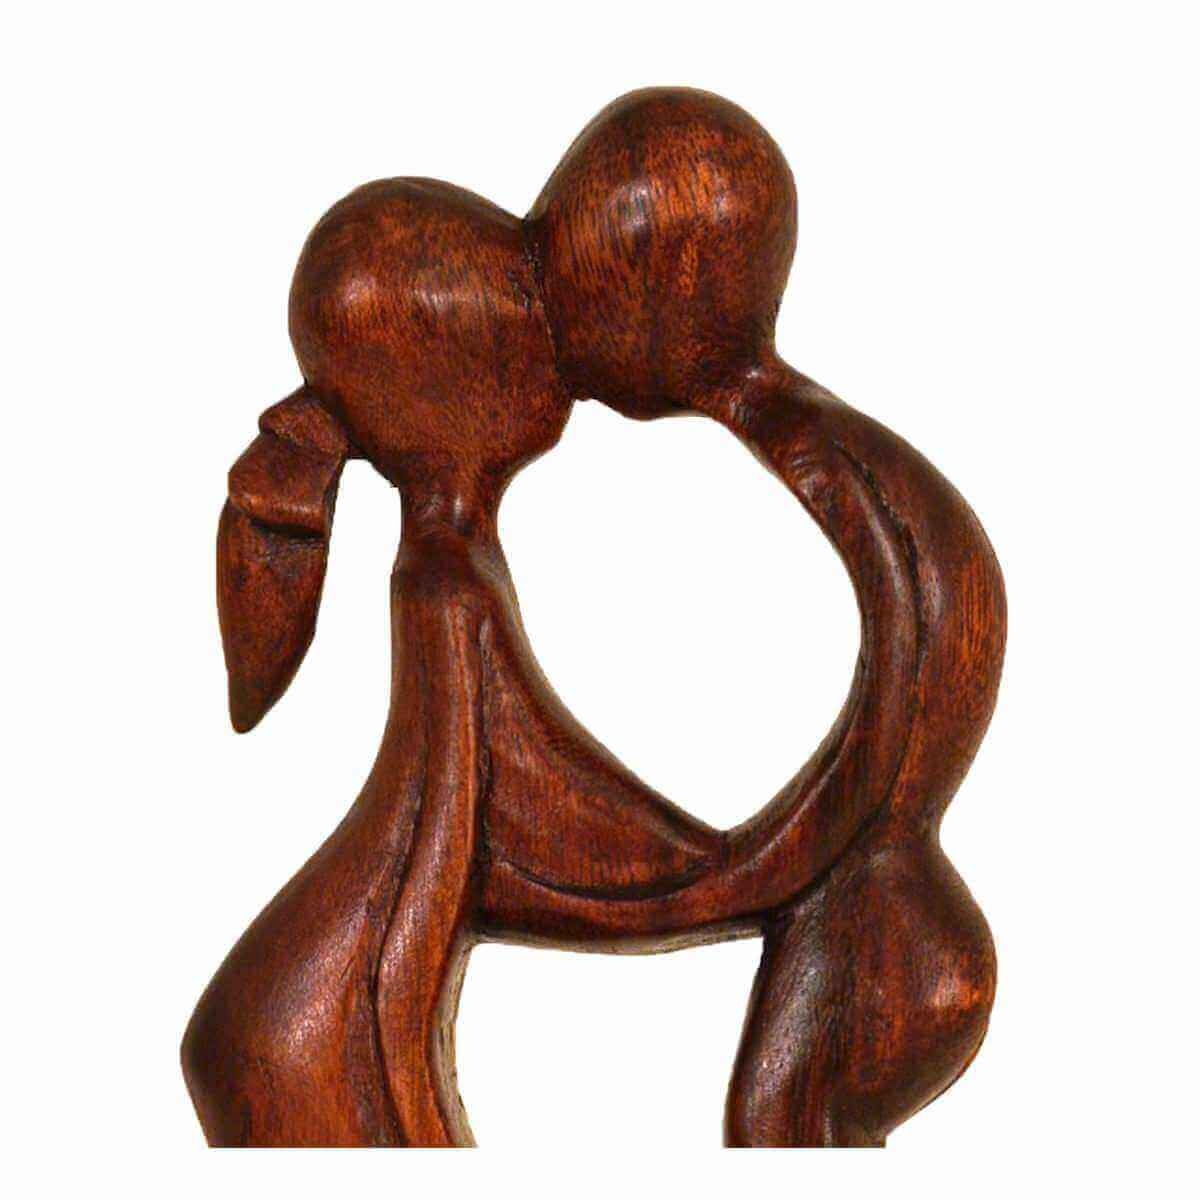 wood figure sculpture abstract wood figure africa asia handmade deco balance ebay. Black Bedroom Furniture Sets. Home Design Ideas